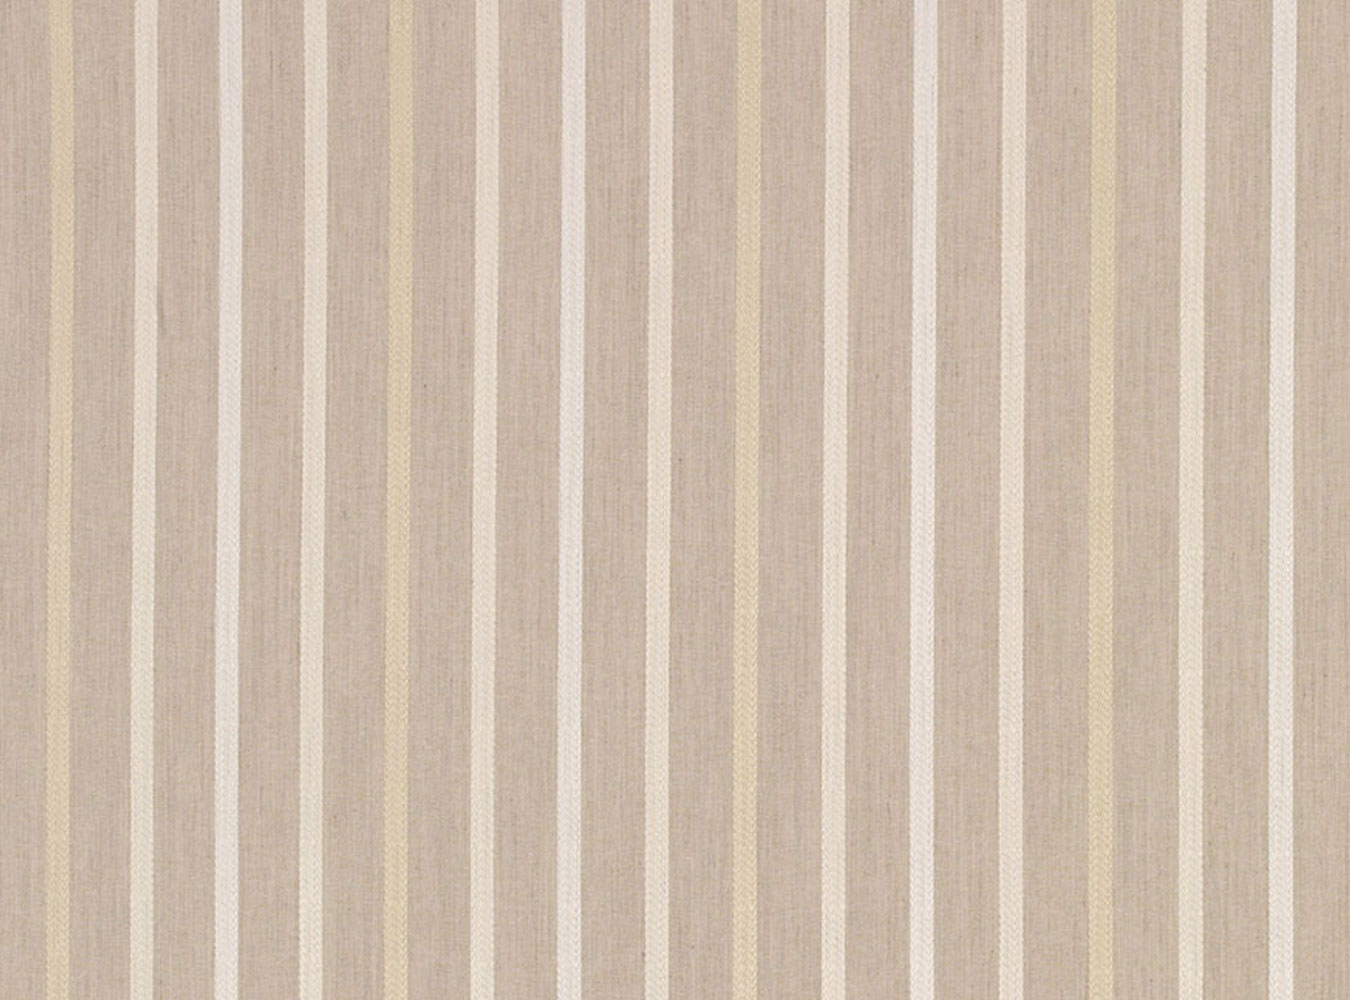 Laura Ashley Luxford Stripe Off White - Swatch Sample